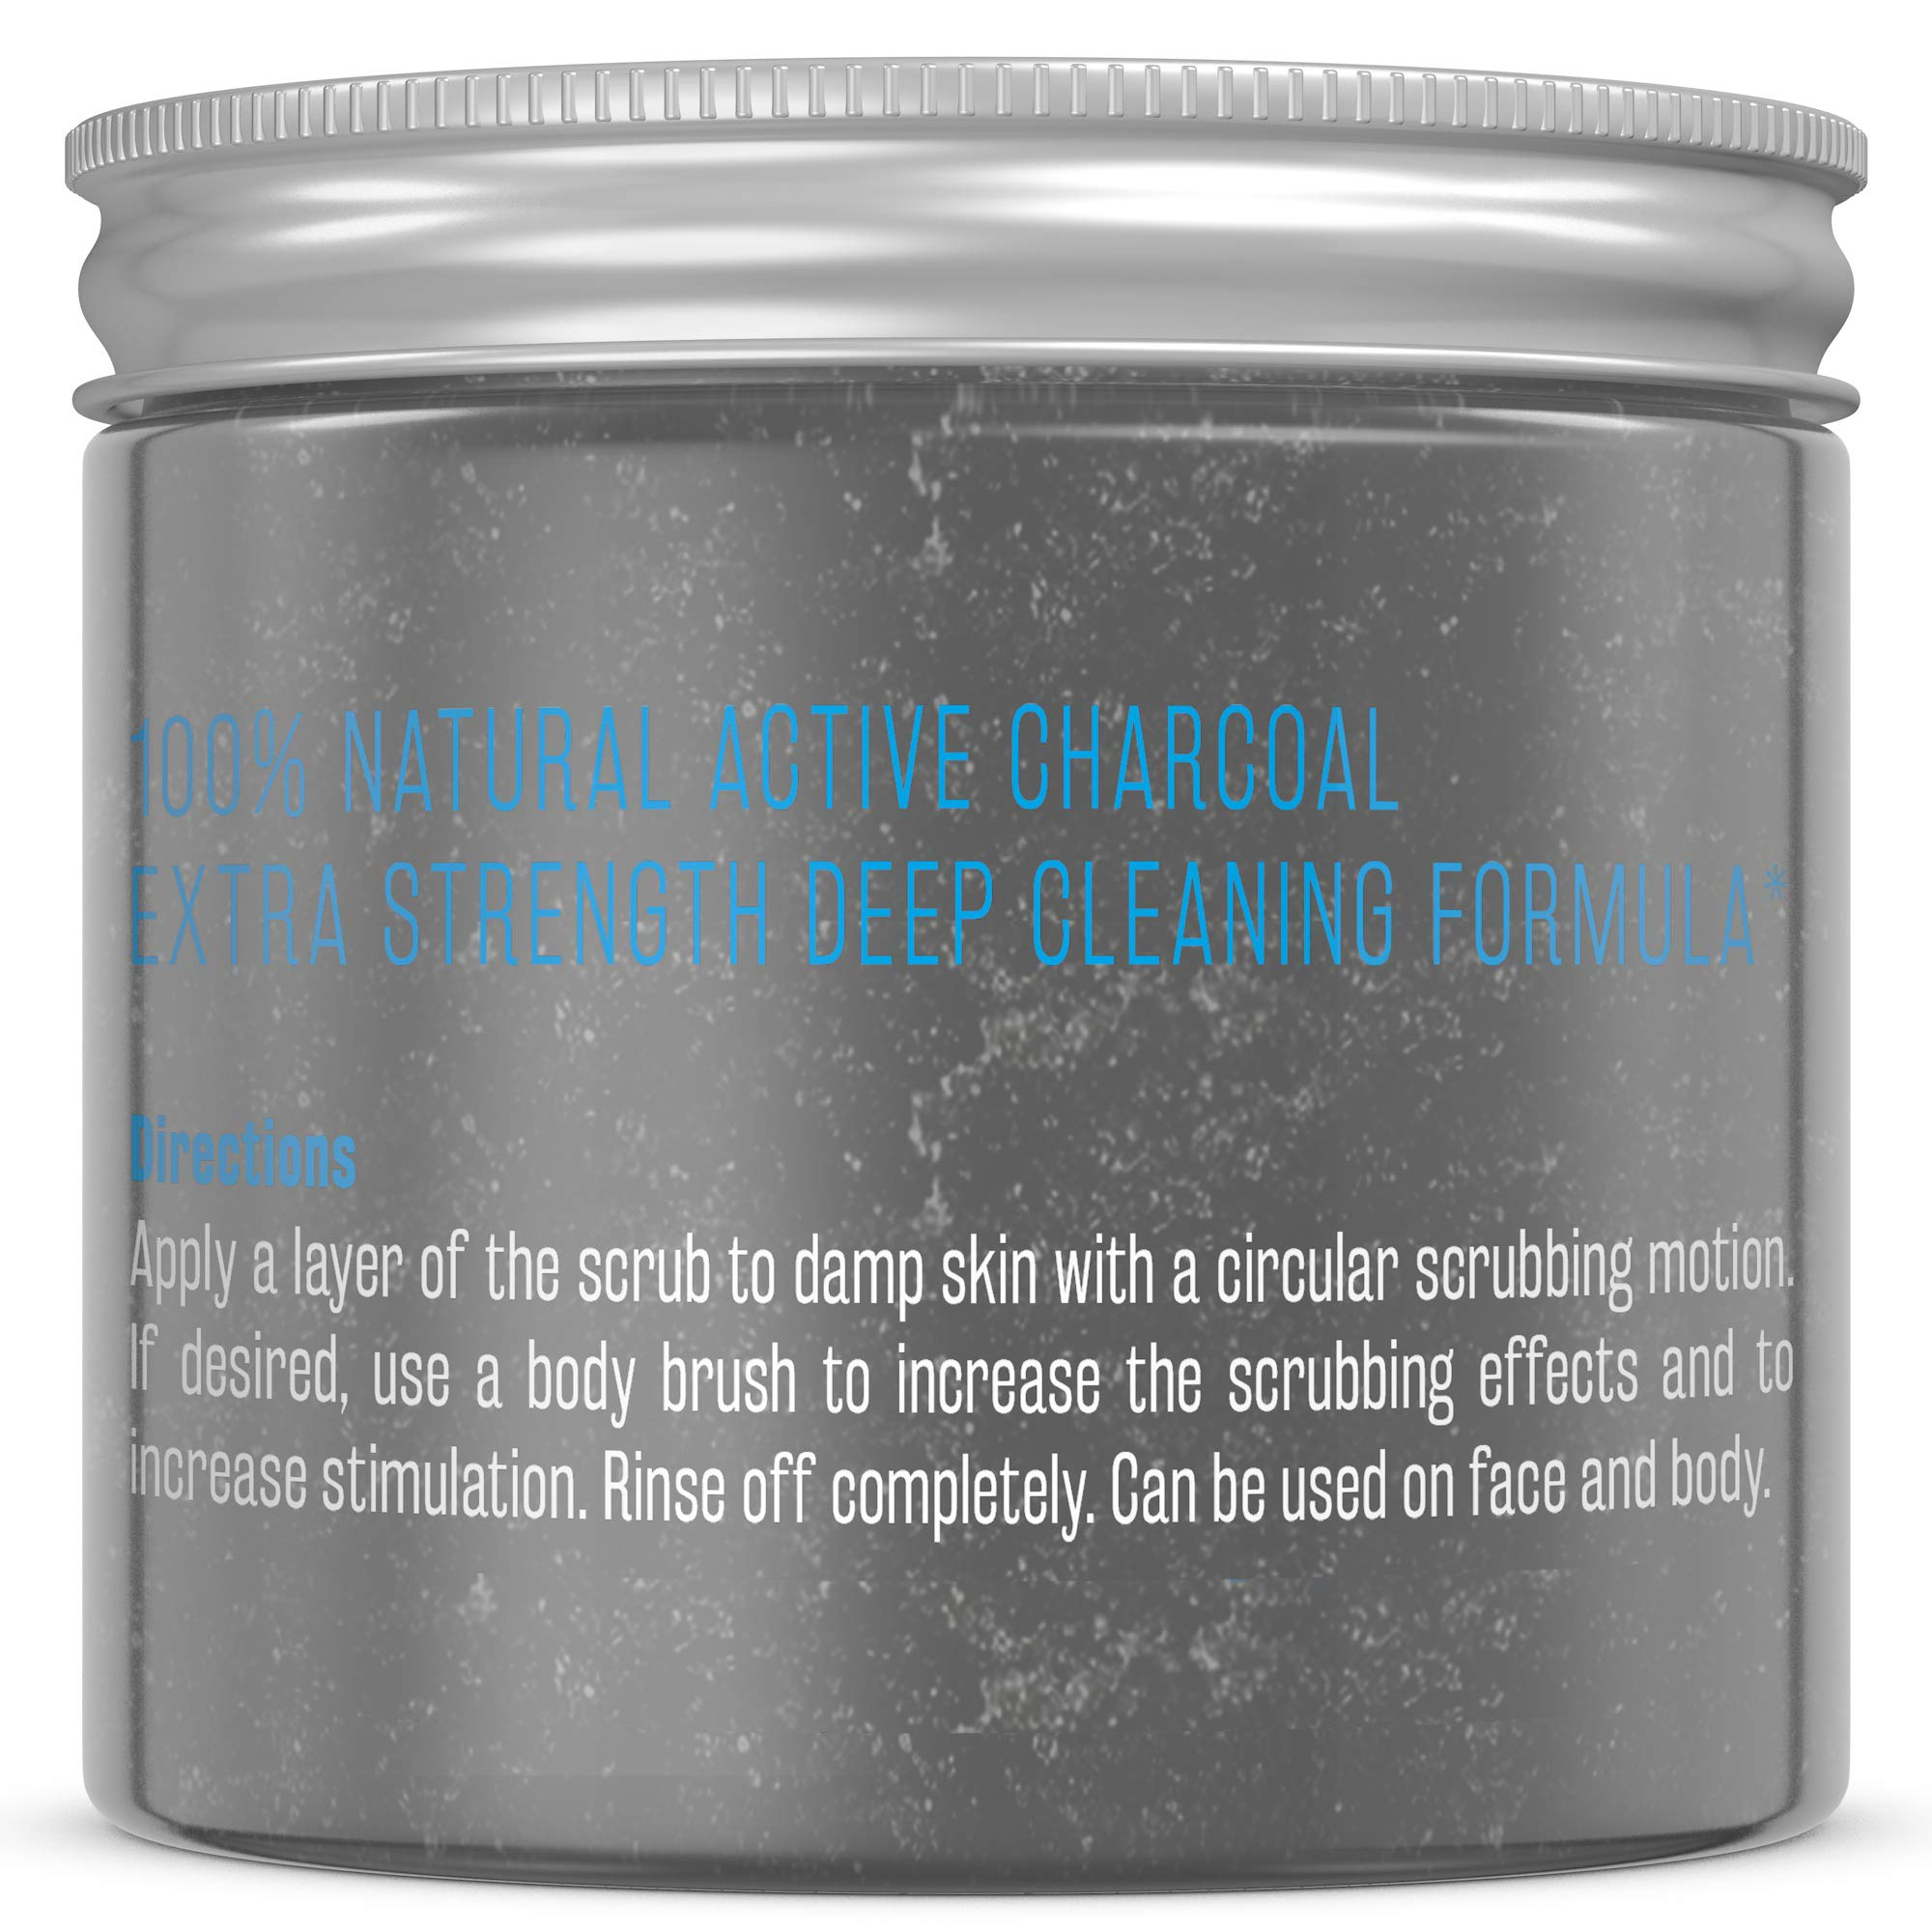 M3 Naturals Activated Charcoal Scrub Infused with Collagen & Stem Cell All Natural Body & Face Skin Care Exfoliating Blackheads Acne Scars Pore Minimizer Reduces Wrinkles Anti Cellulite12 OZ by M3 Naturals (Image #2)